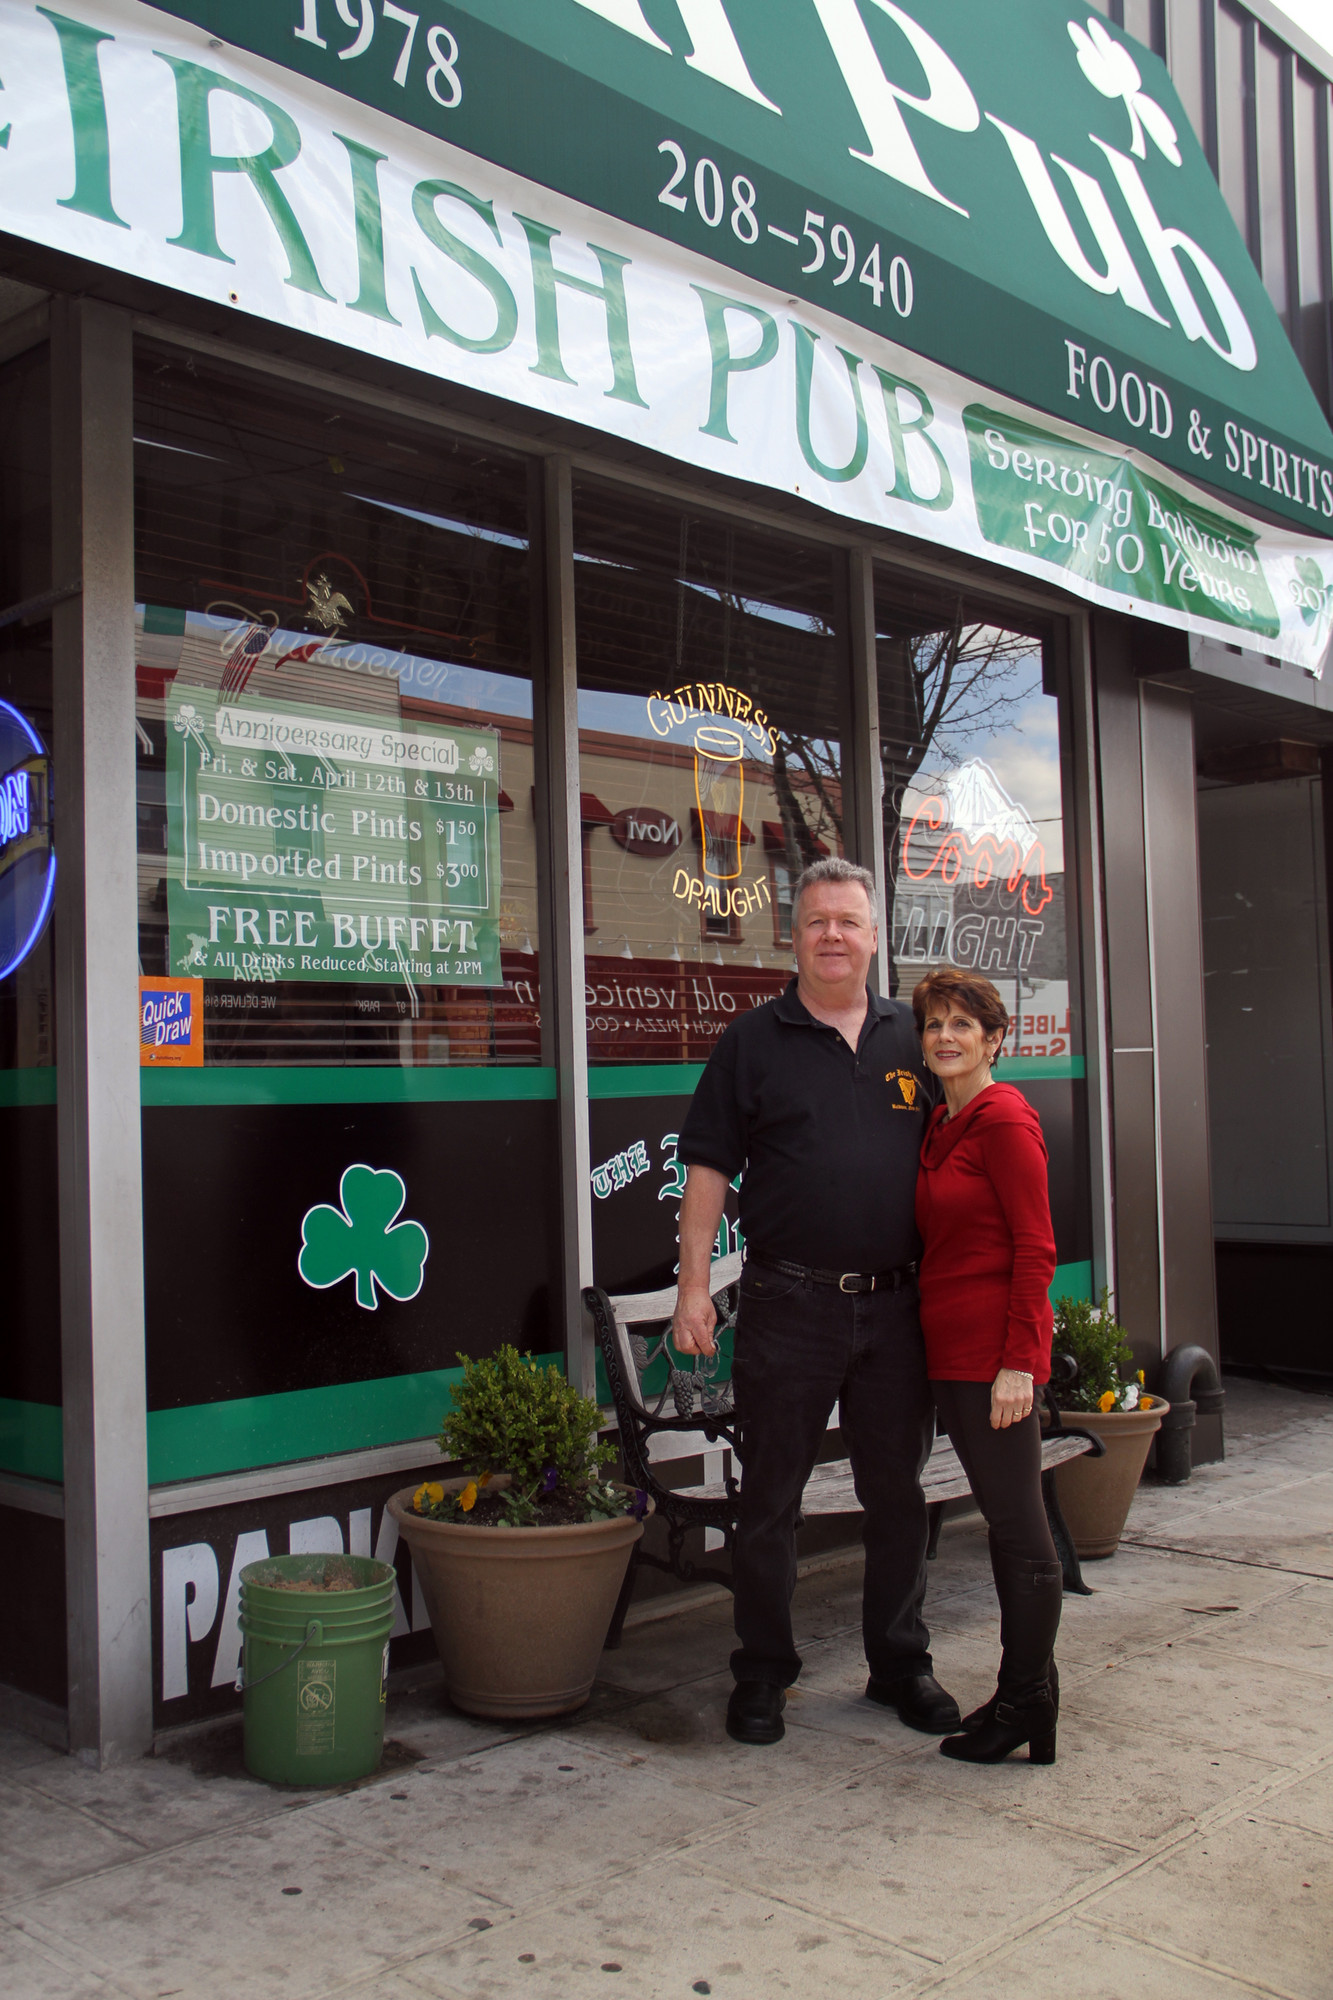 Irish Pub owners Jimmy and Angela Kearney celebrated the pub's 50th anniversary last week.